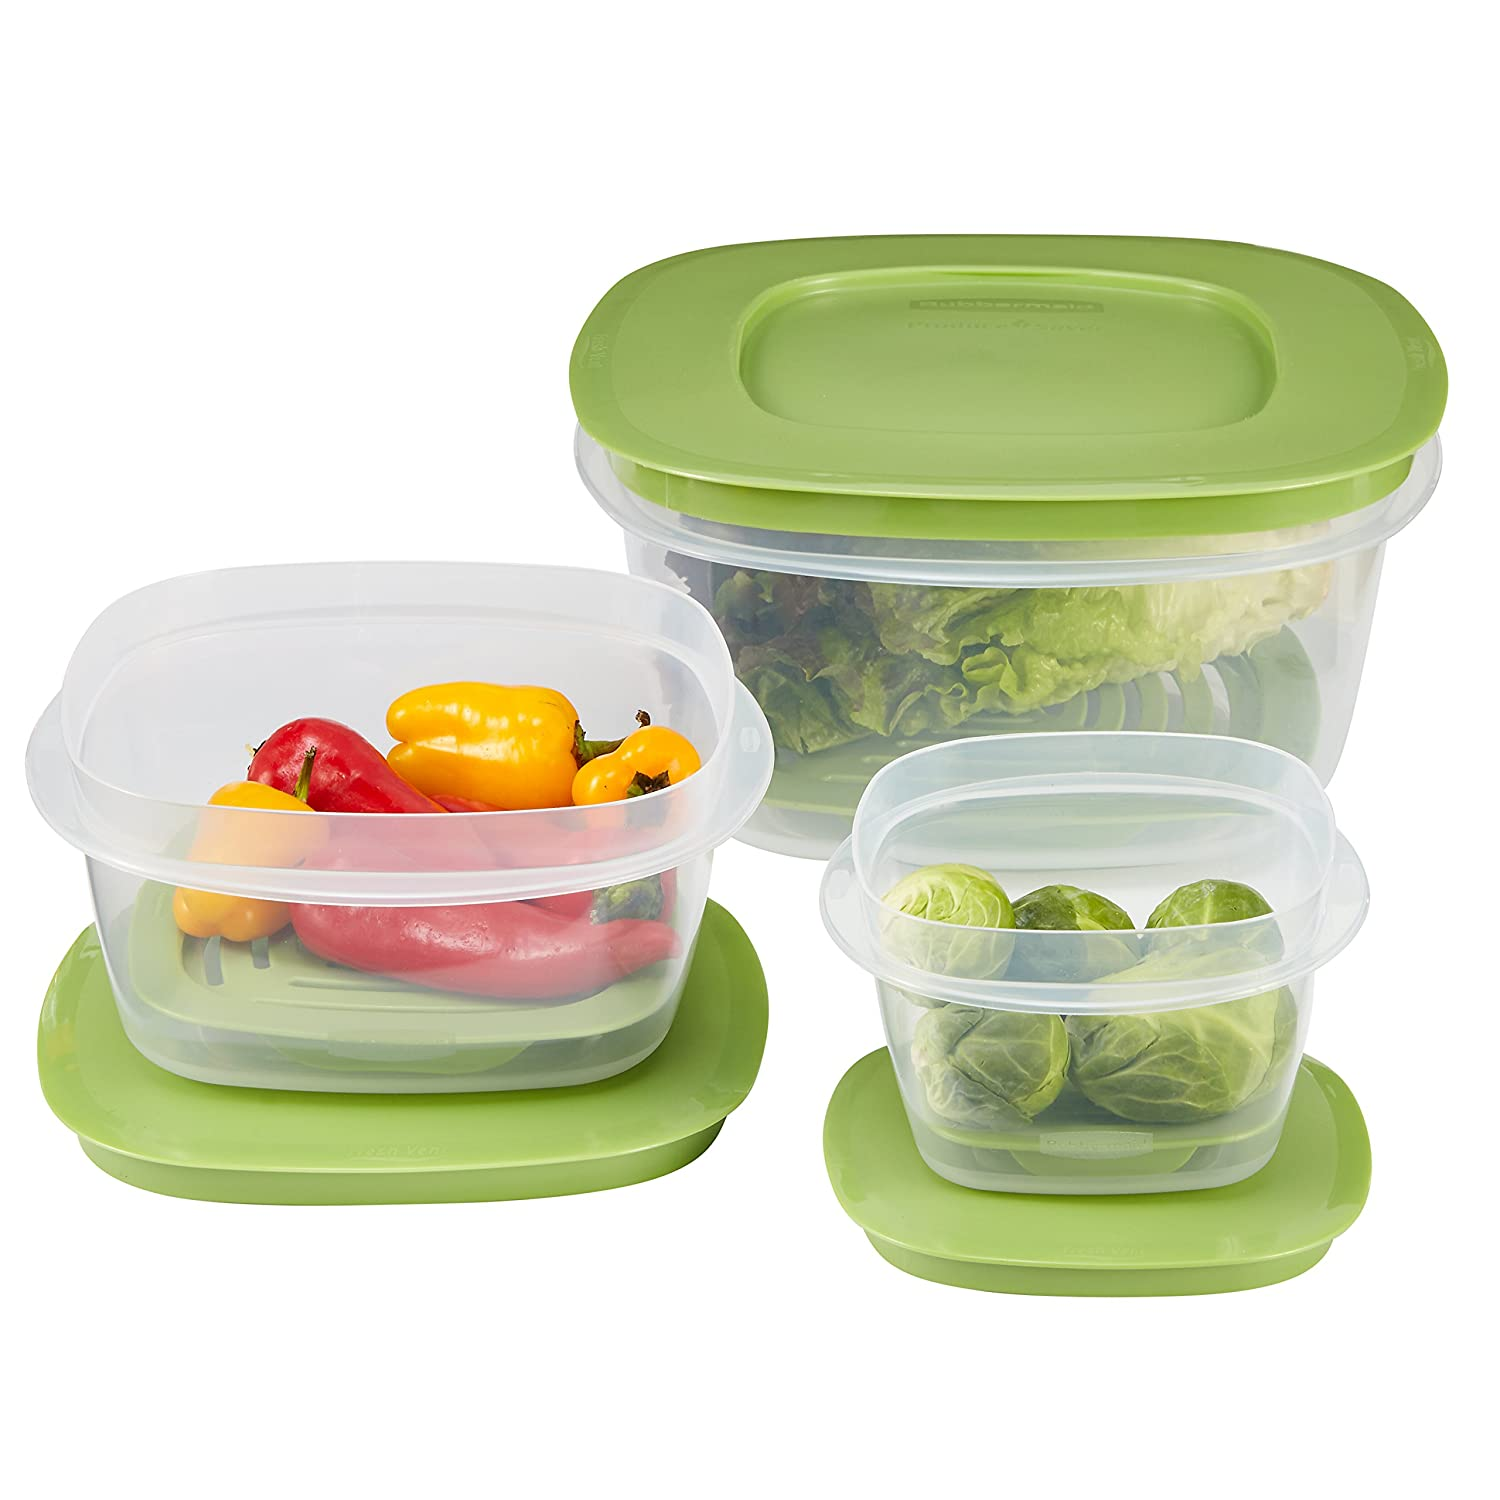 Rubbermaid Produce Saver Value Pack: 1-5 Cup and 1-14 Cup Food Storage Containers Rubbermaid Consumer 1783065